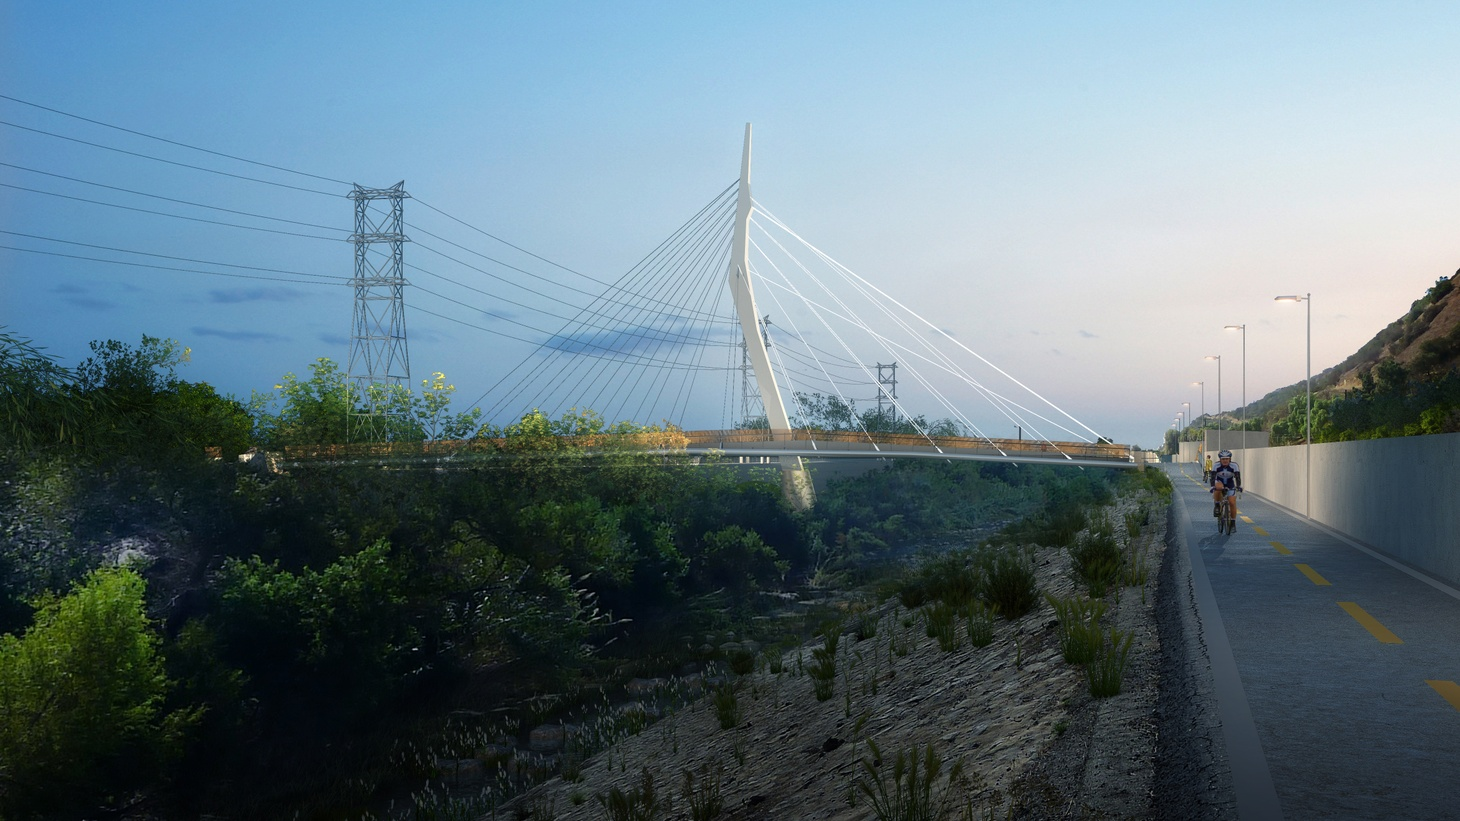 This week officials broke ground on a $16 million bridge over the LA River that connects Atwater Village and Griffith Park. You can walk or bike, or even ride a horse over it. One thing you can't do? Drive on it.